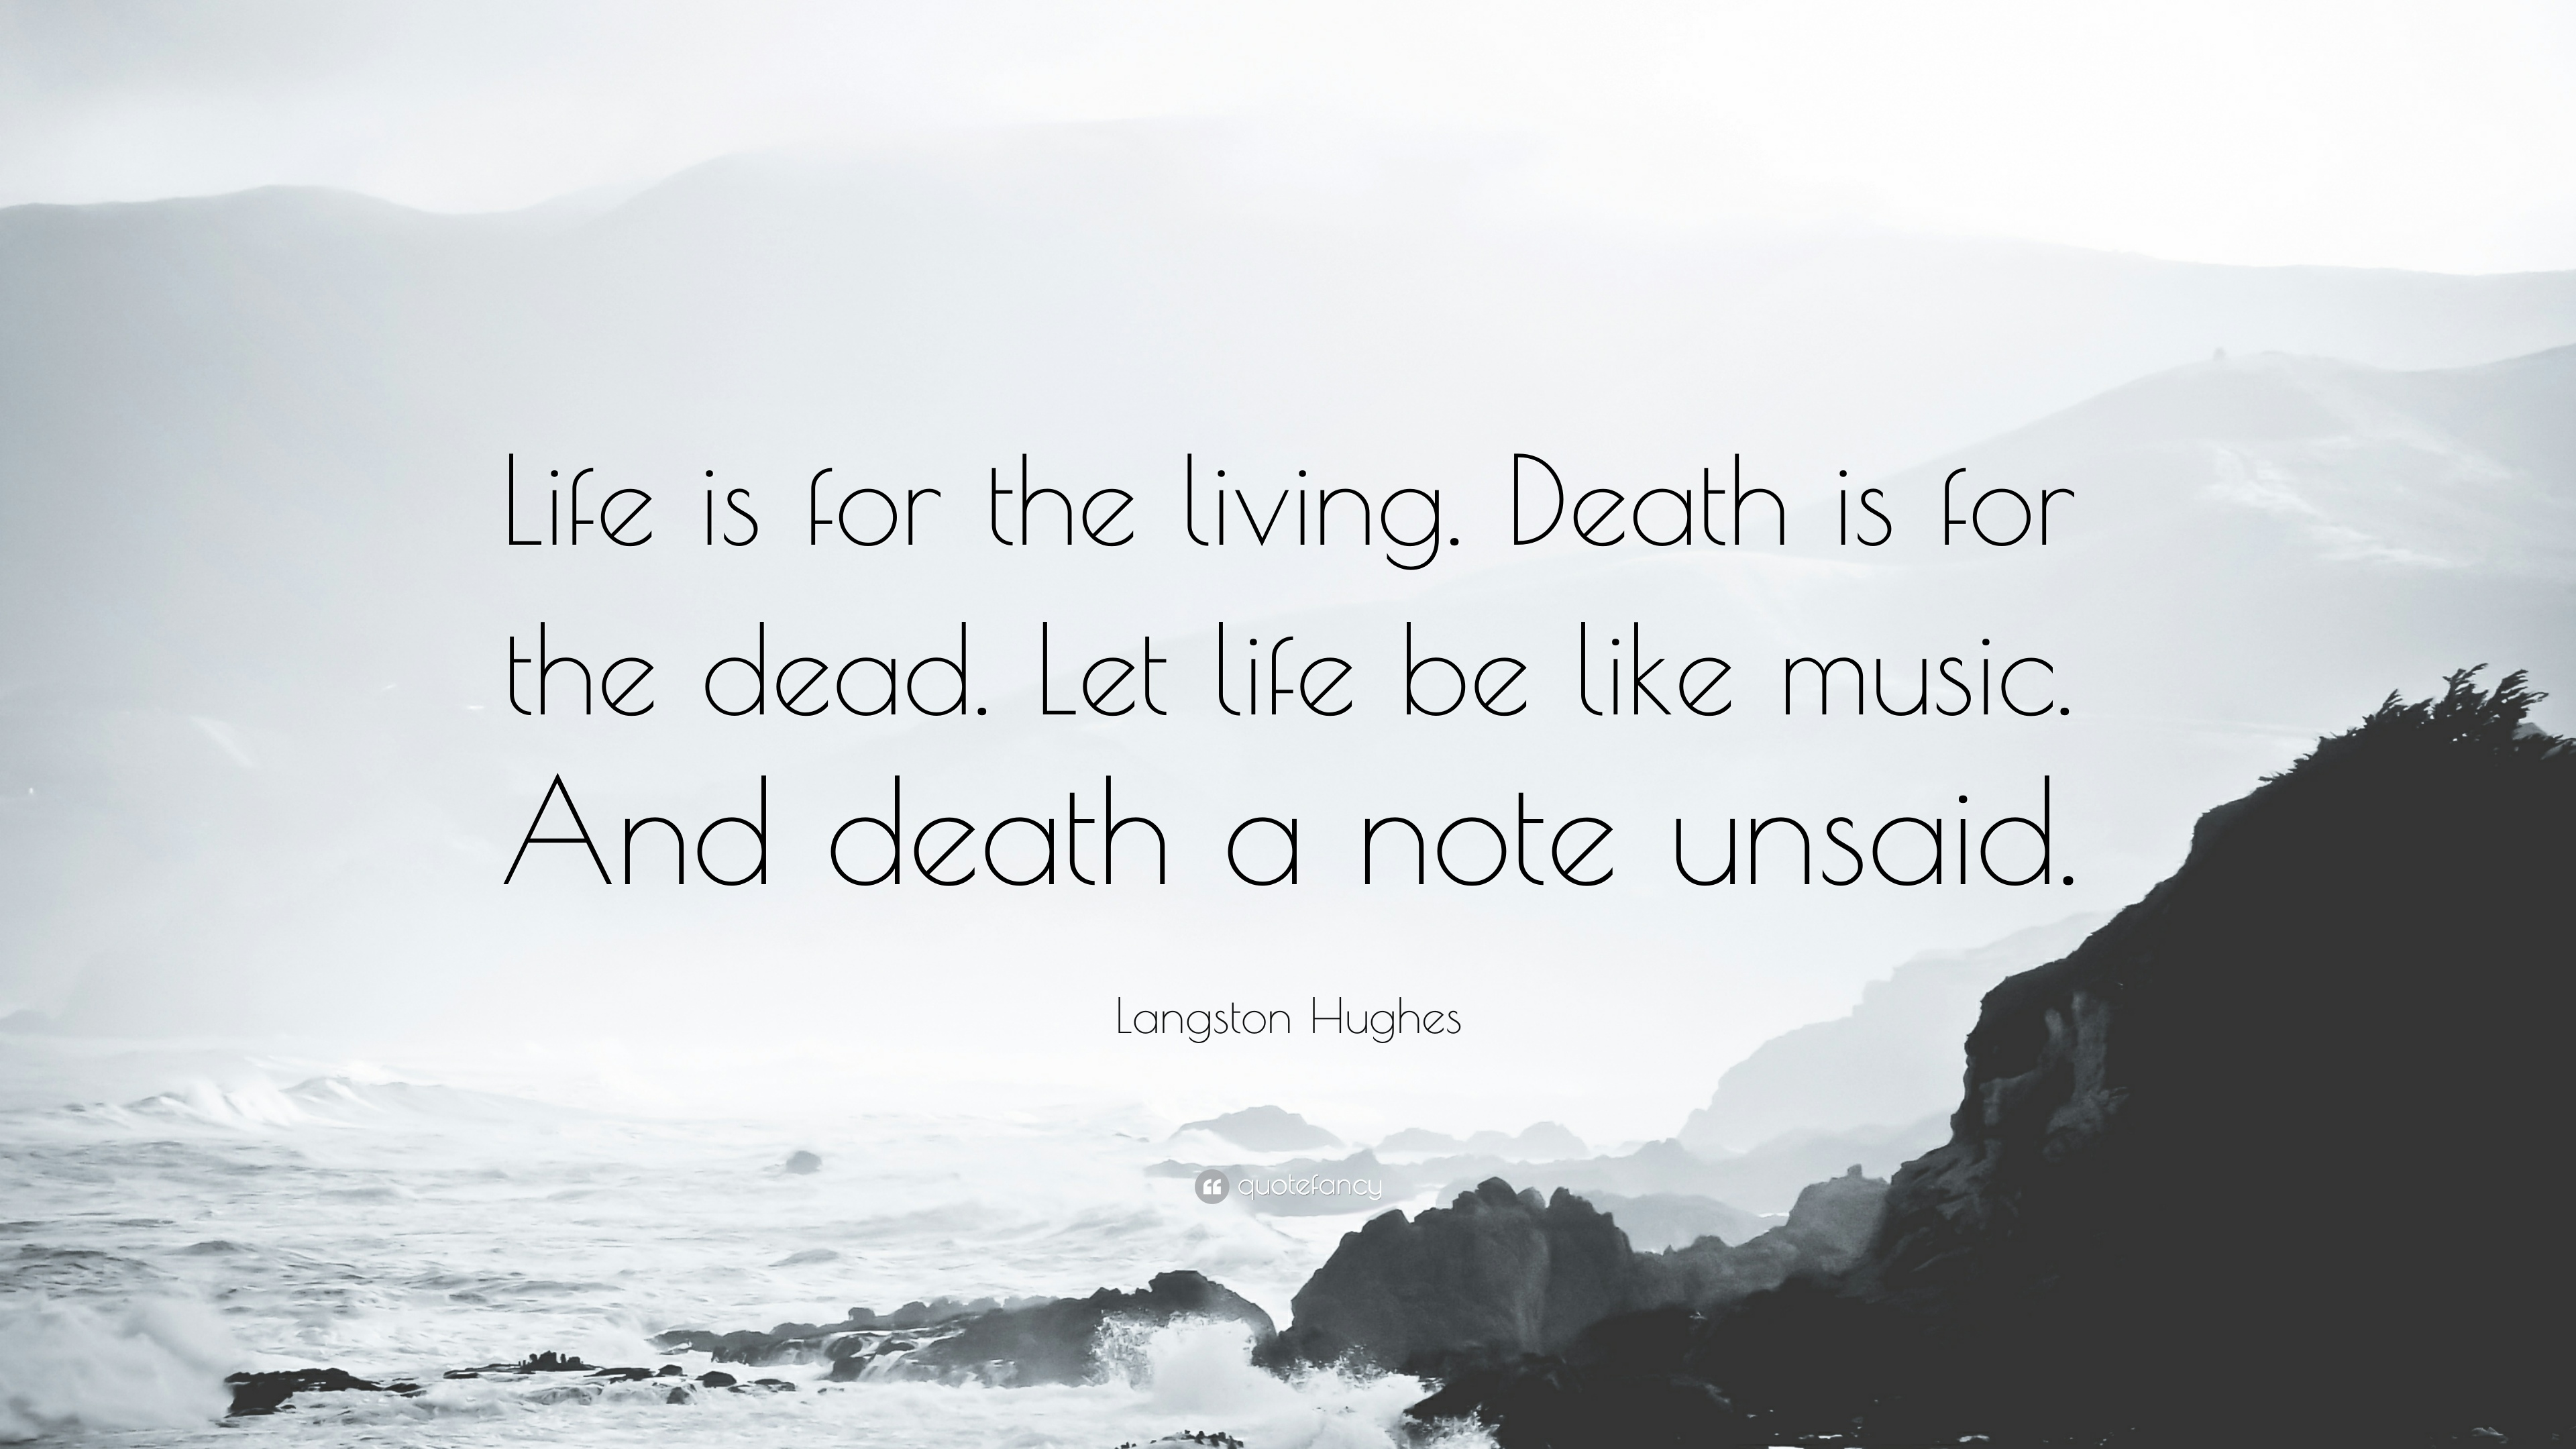 Famous Quotes About Life And Death Langston Hughes Quotes On Death